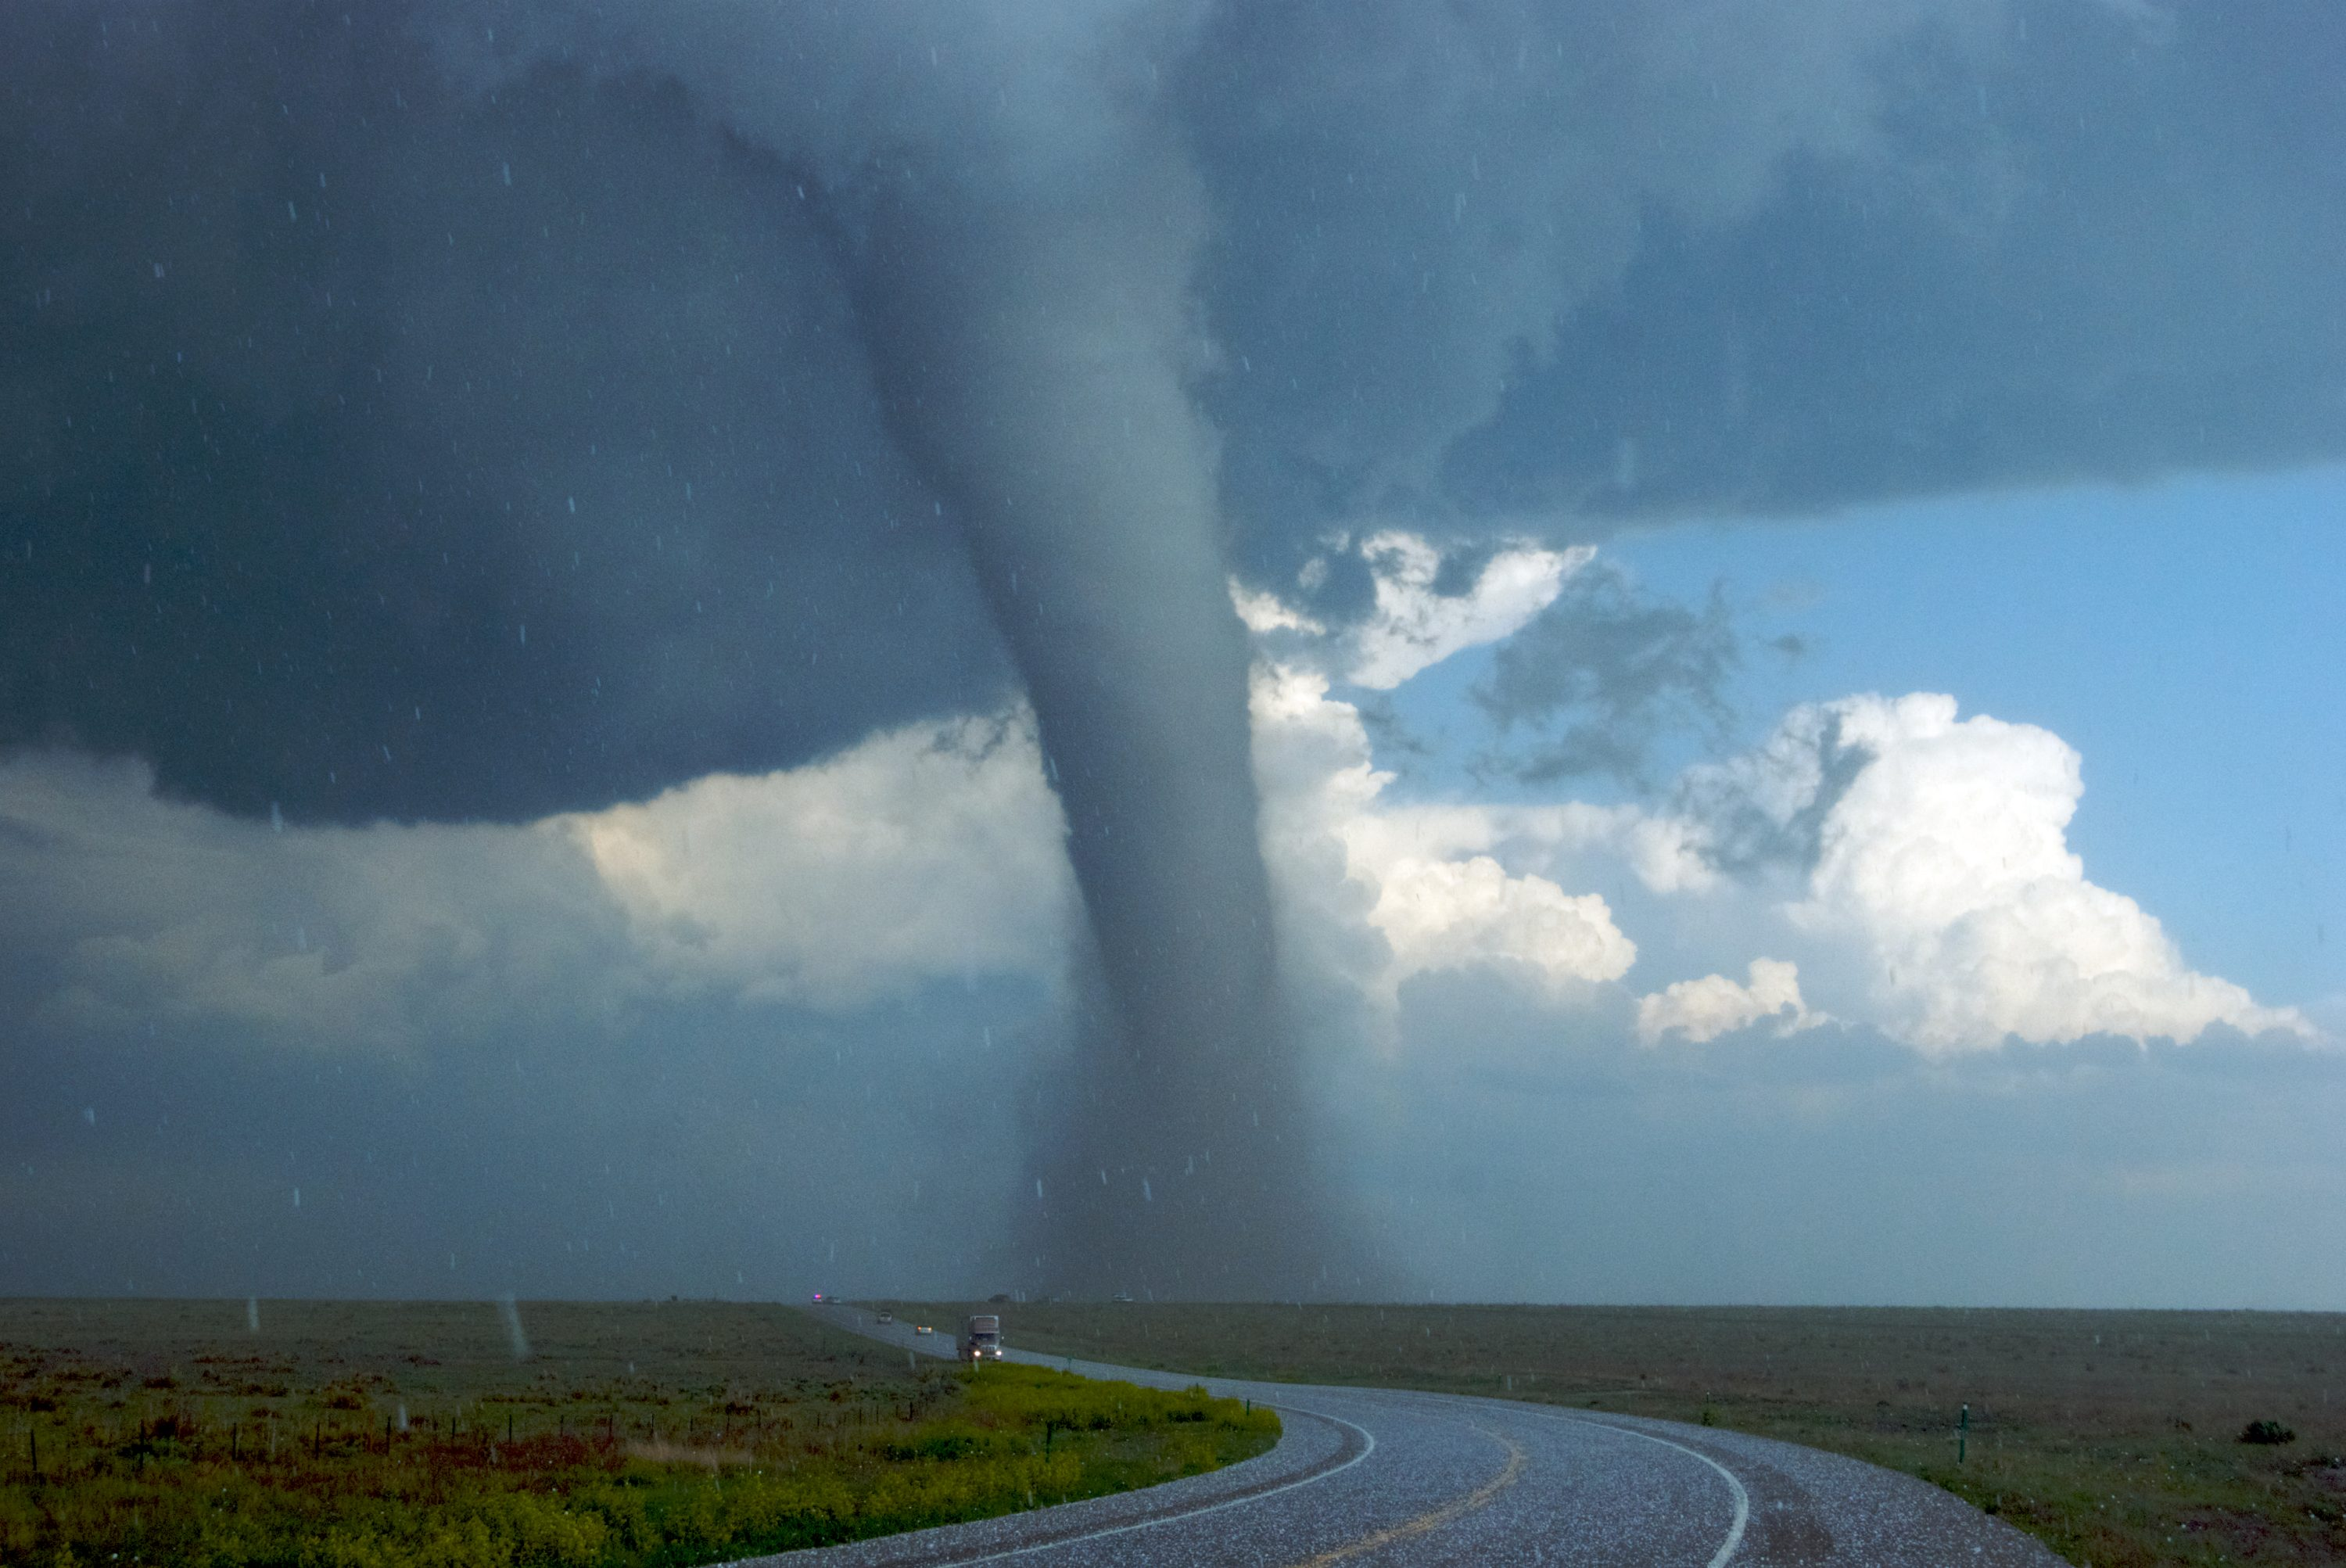 A tornado builds up within minutes and, in relation to its brief duration, is more destructive than a hurricane. Topics Online explains how a tornado forms.